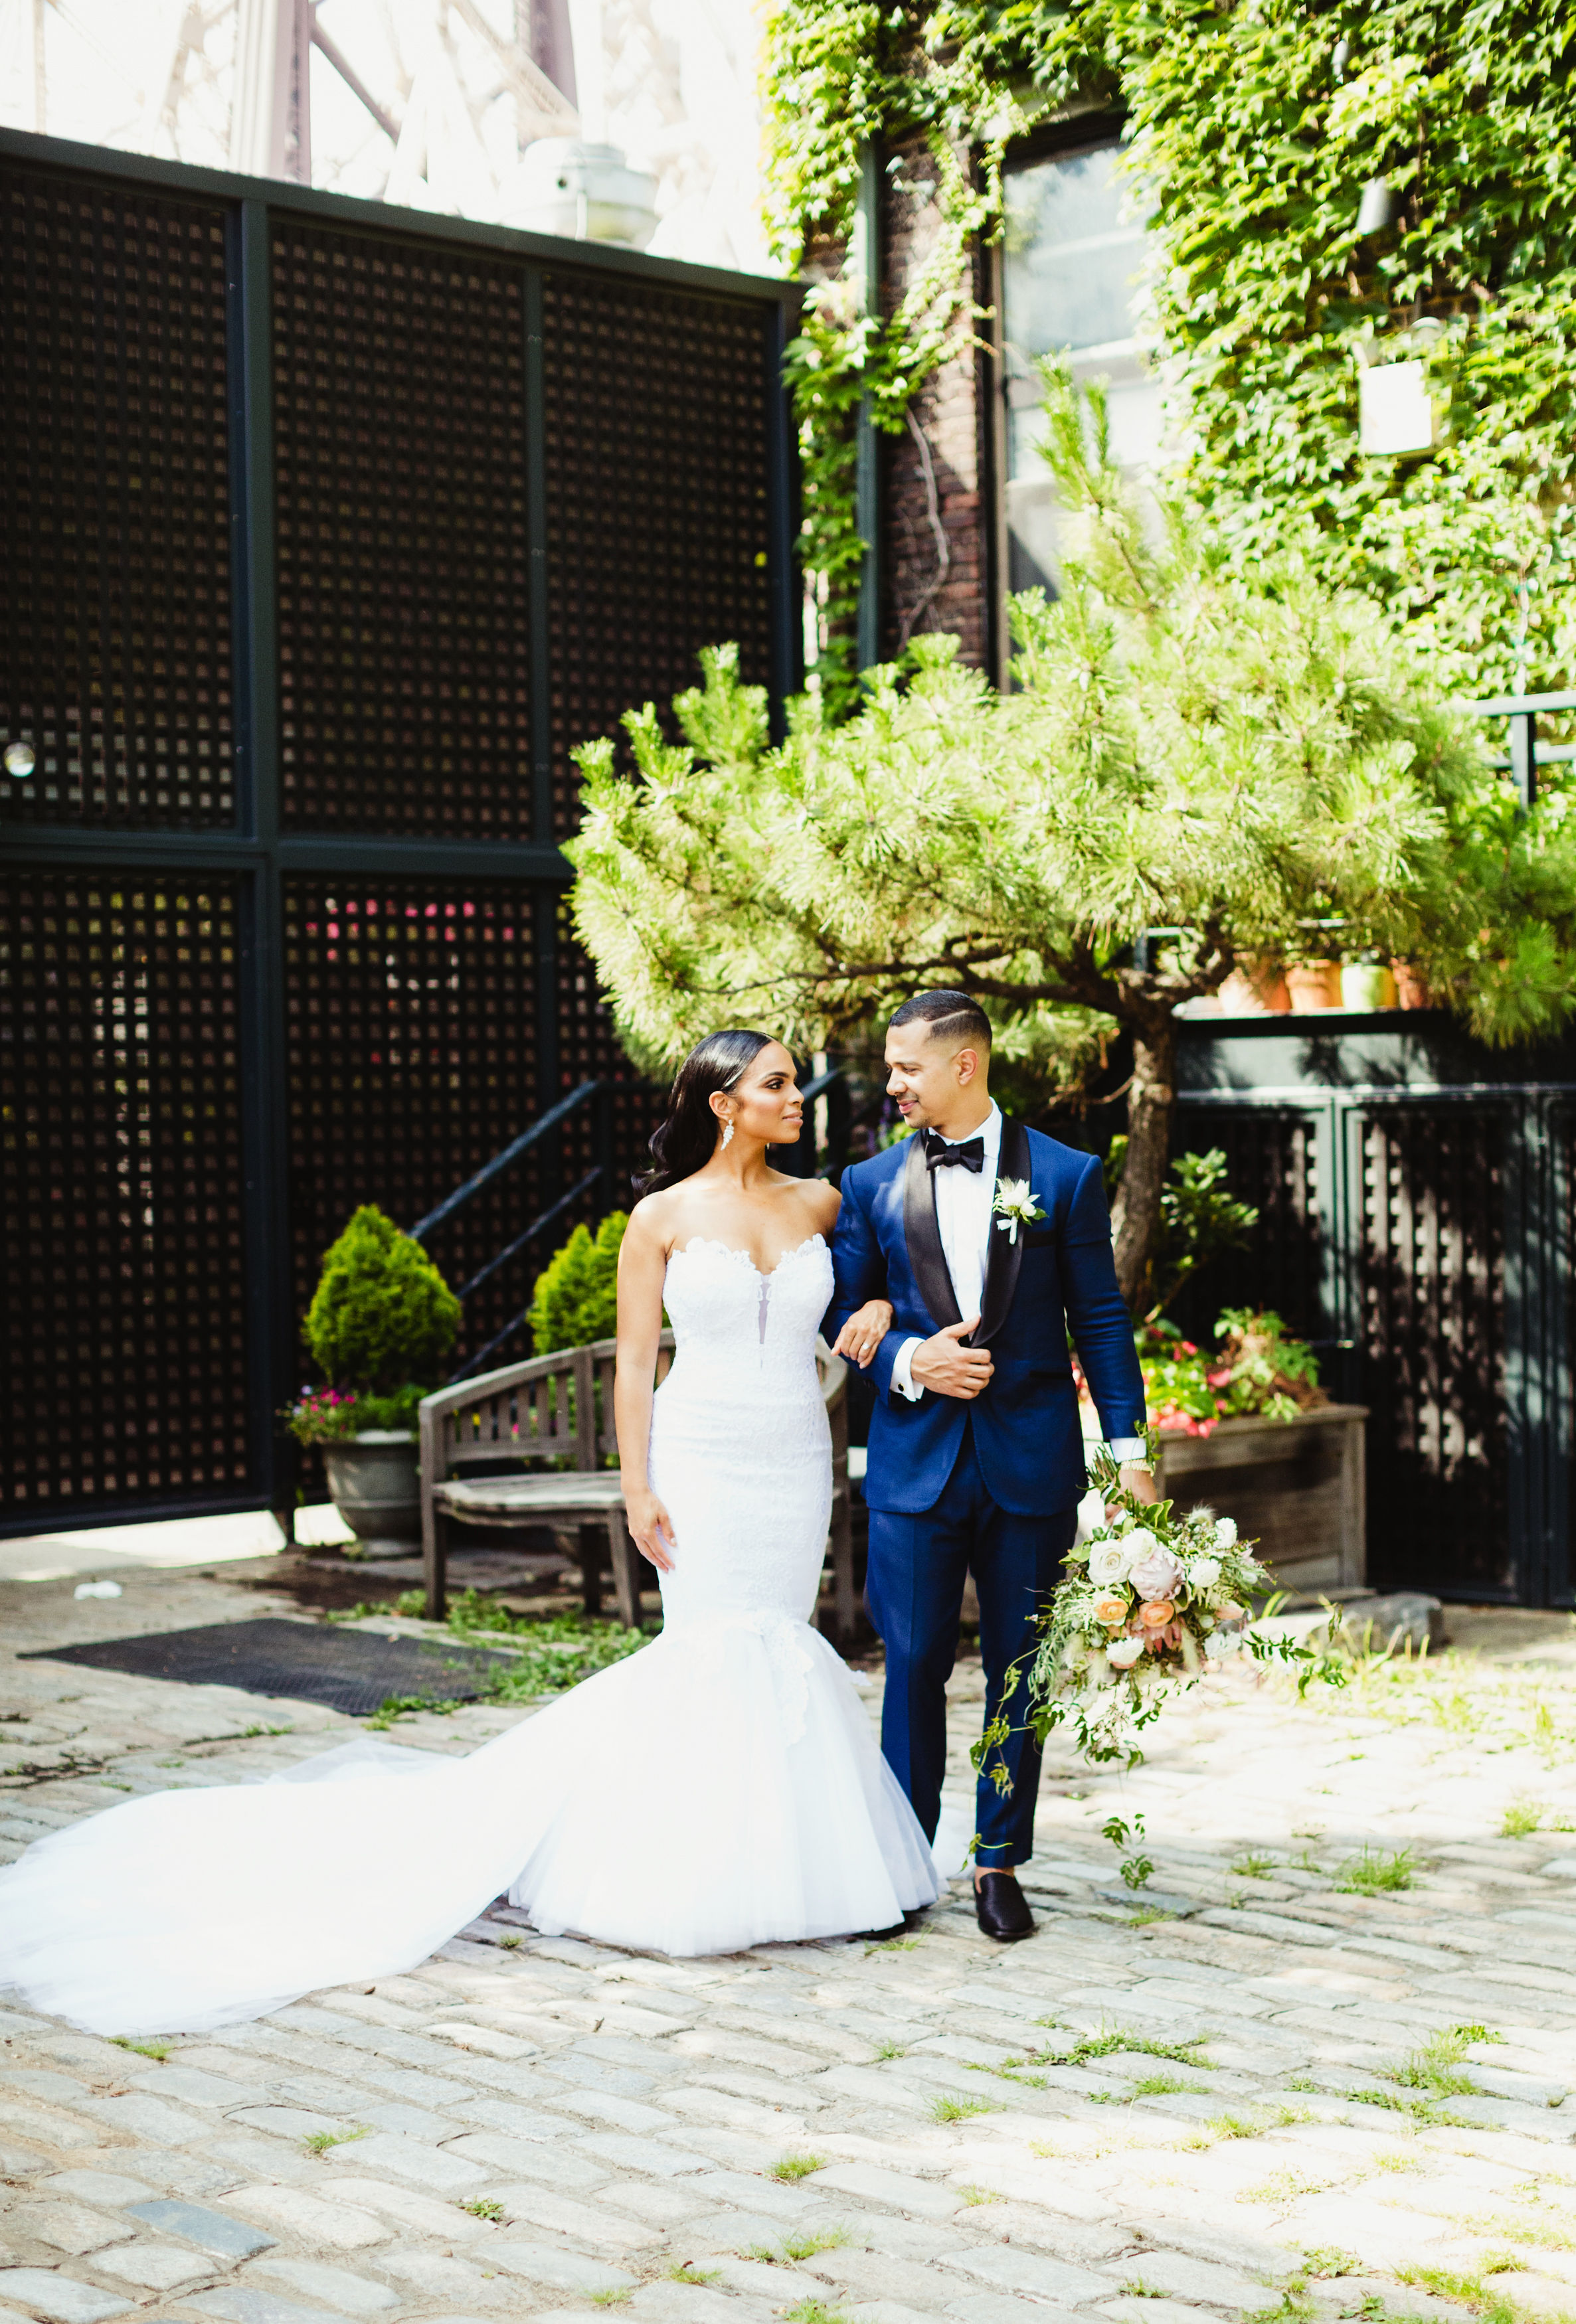 bride and groom walking arm in arm